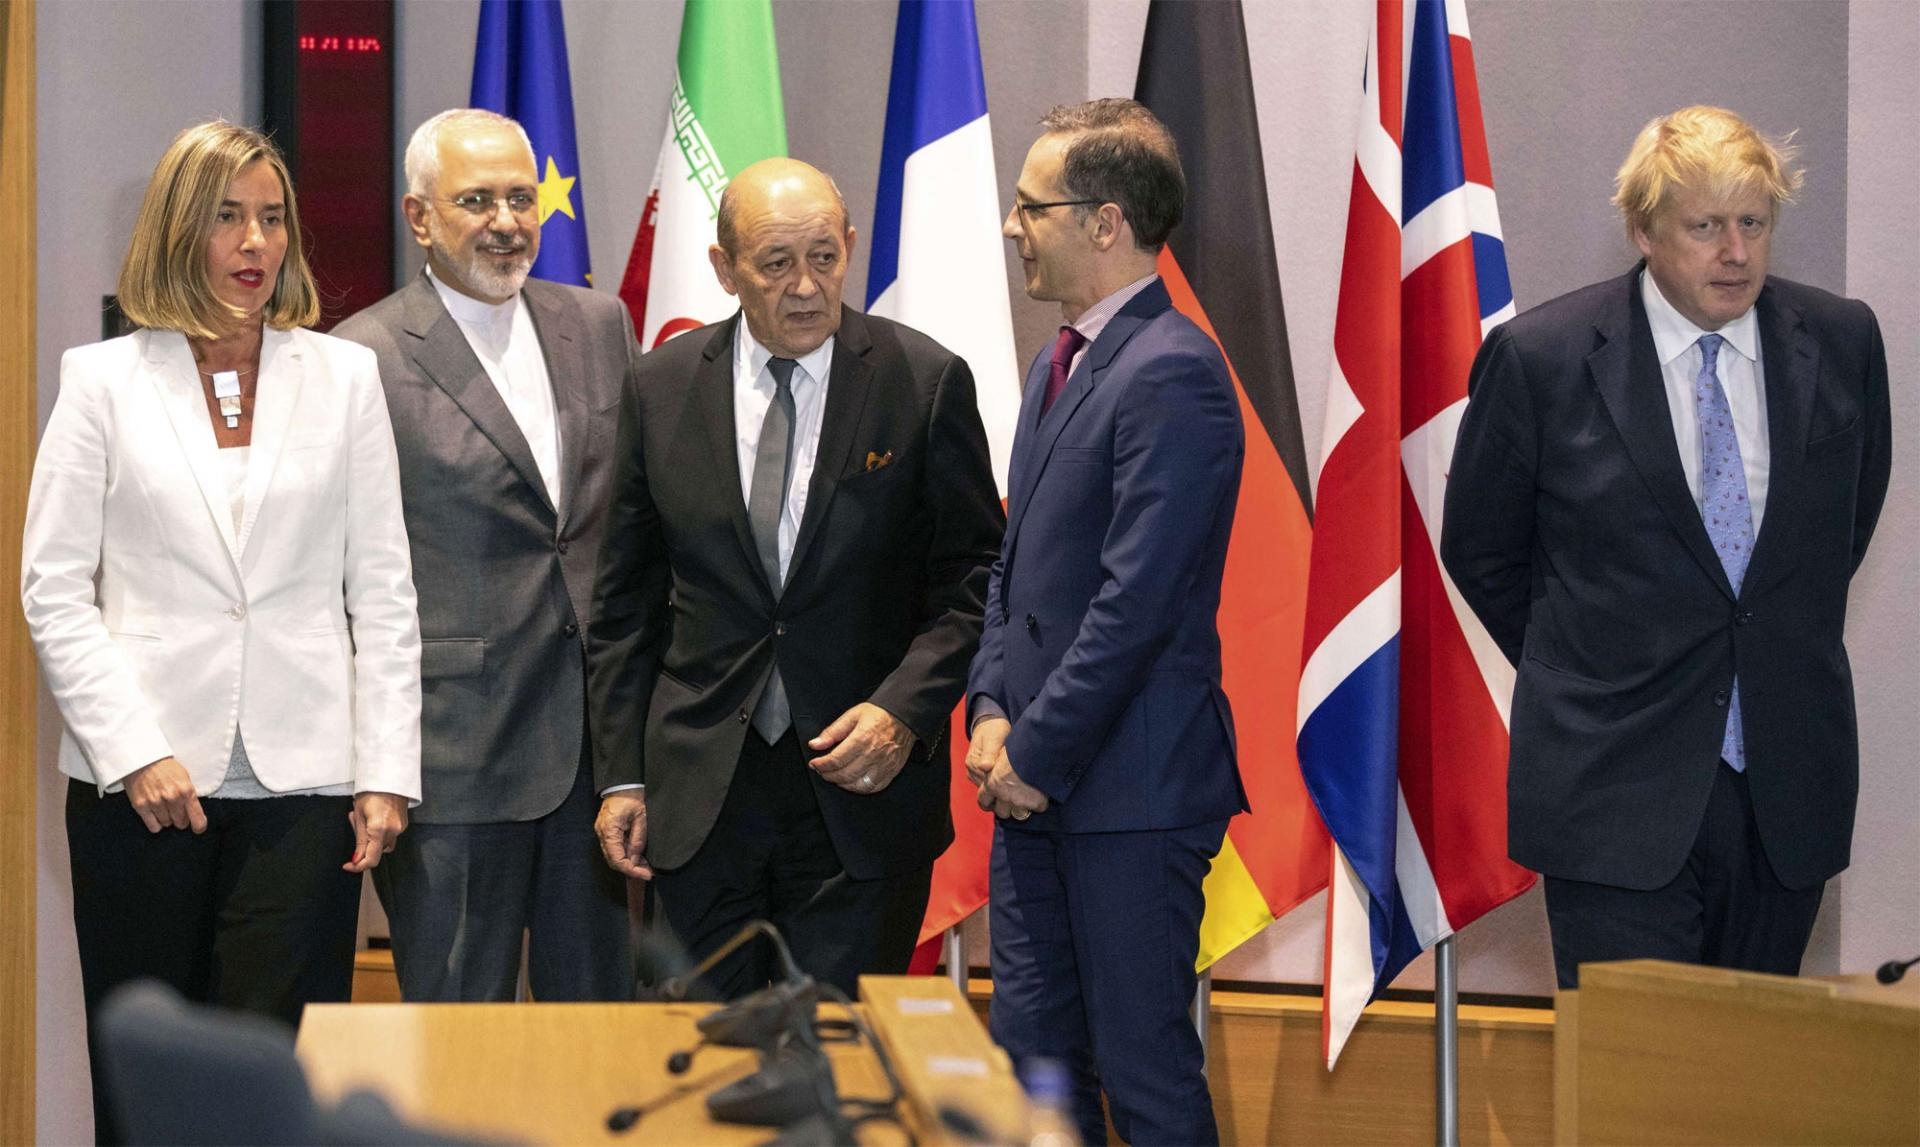 Iran Nuclear Deal Signatories Meet For First Time Since Us Pullout Meo